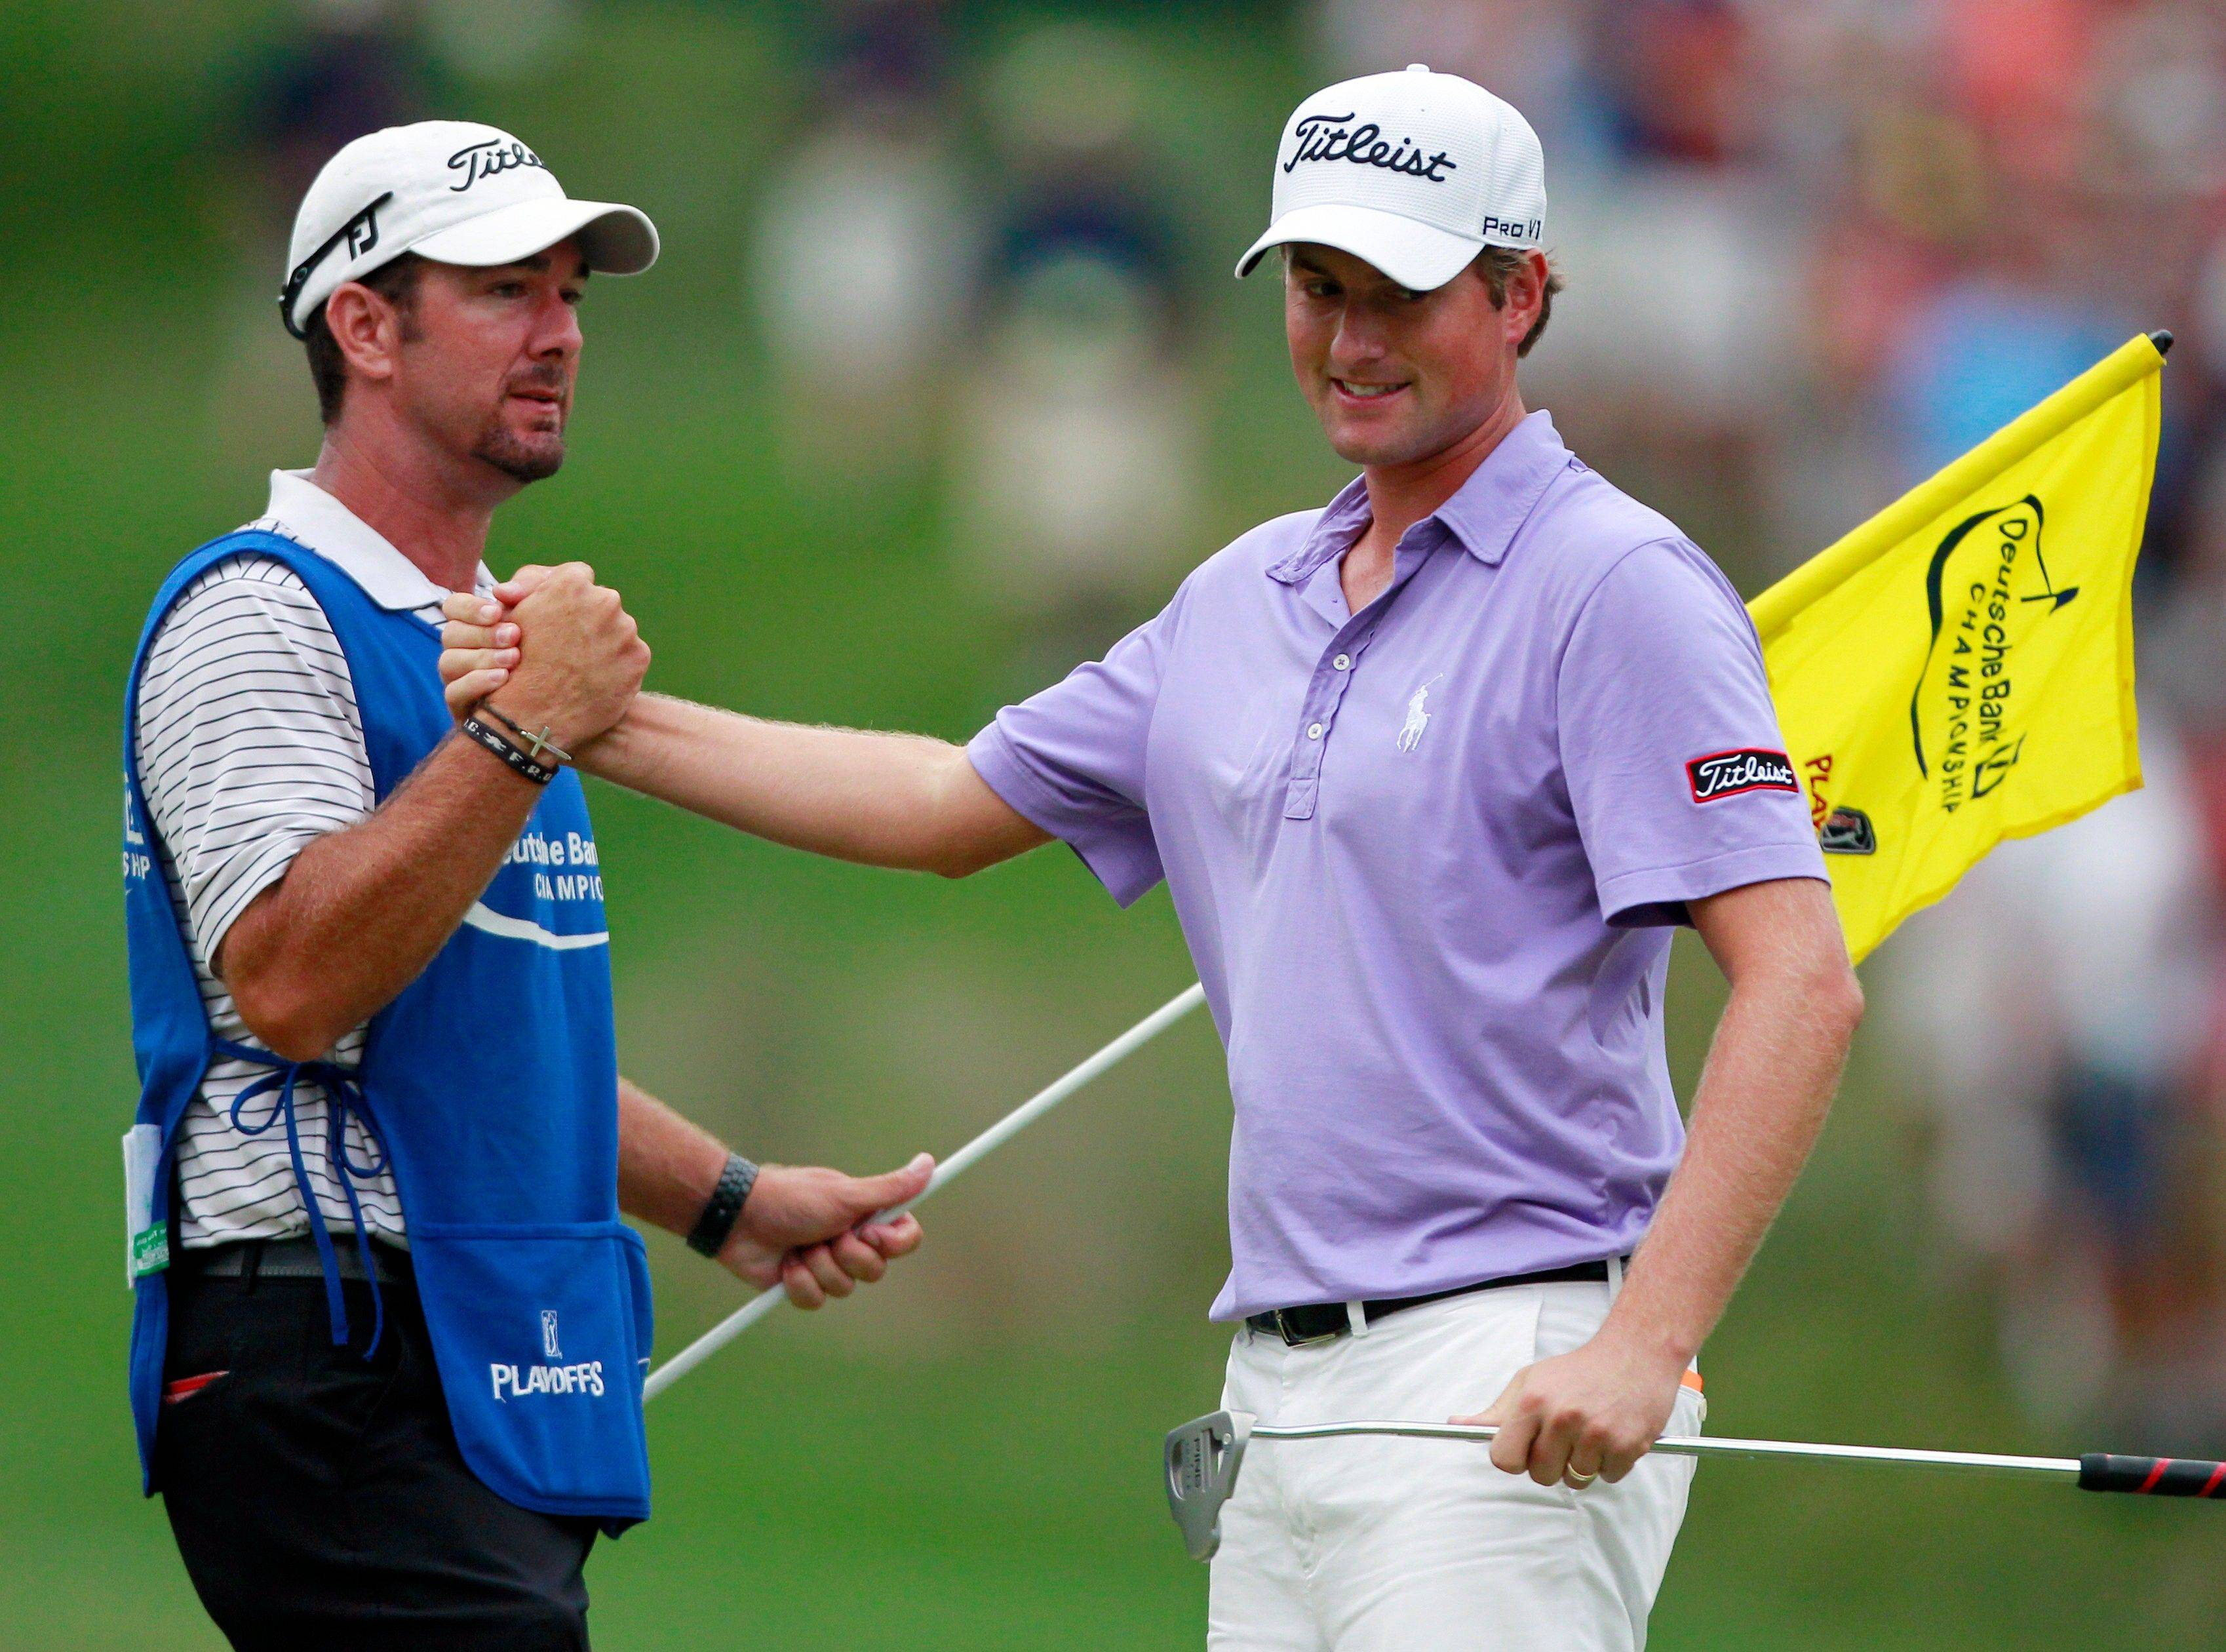 Webb Simpson, right, celebrates with his caddie Paul Tesori after winning against Chez Reavie with a birdie on the second playoff hole in the final round of the Deutsche Bank Championship golf tournament at TPC Boston in Norton, Mass.